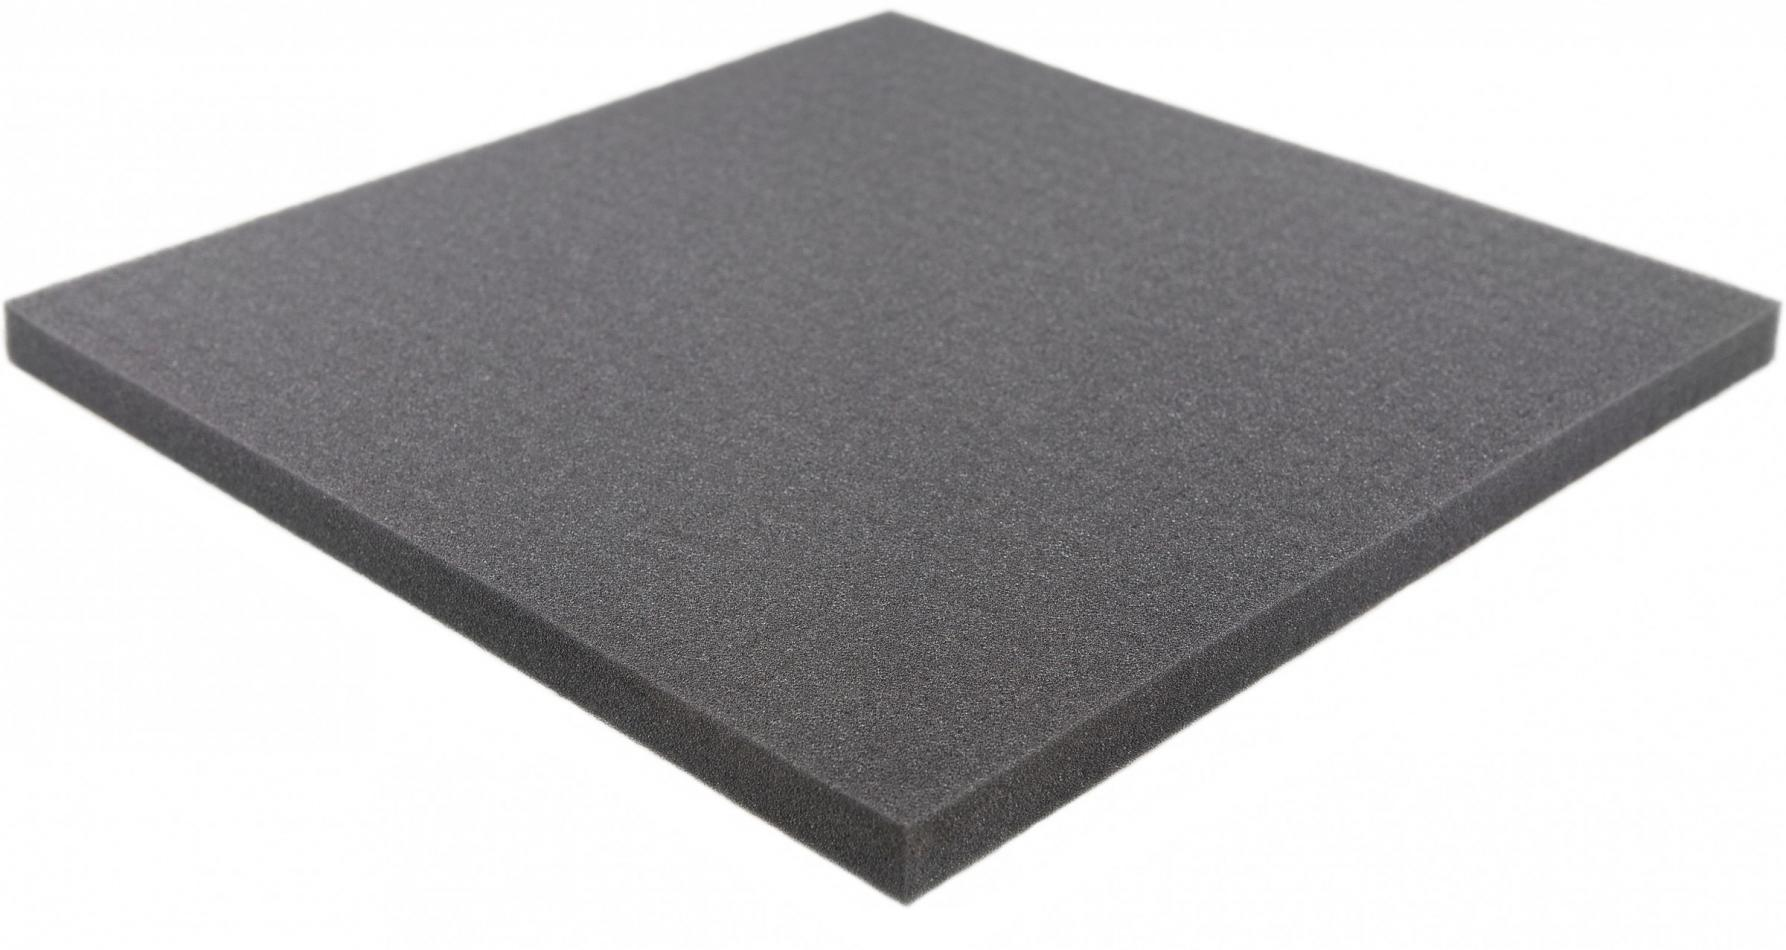 600 mm x 600 mm x 20 mm (0.8 inch) Raster / Pick and Pluck / Pre-Cubed foam tray - Raster 15 mm